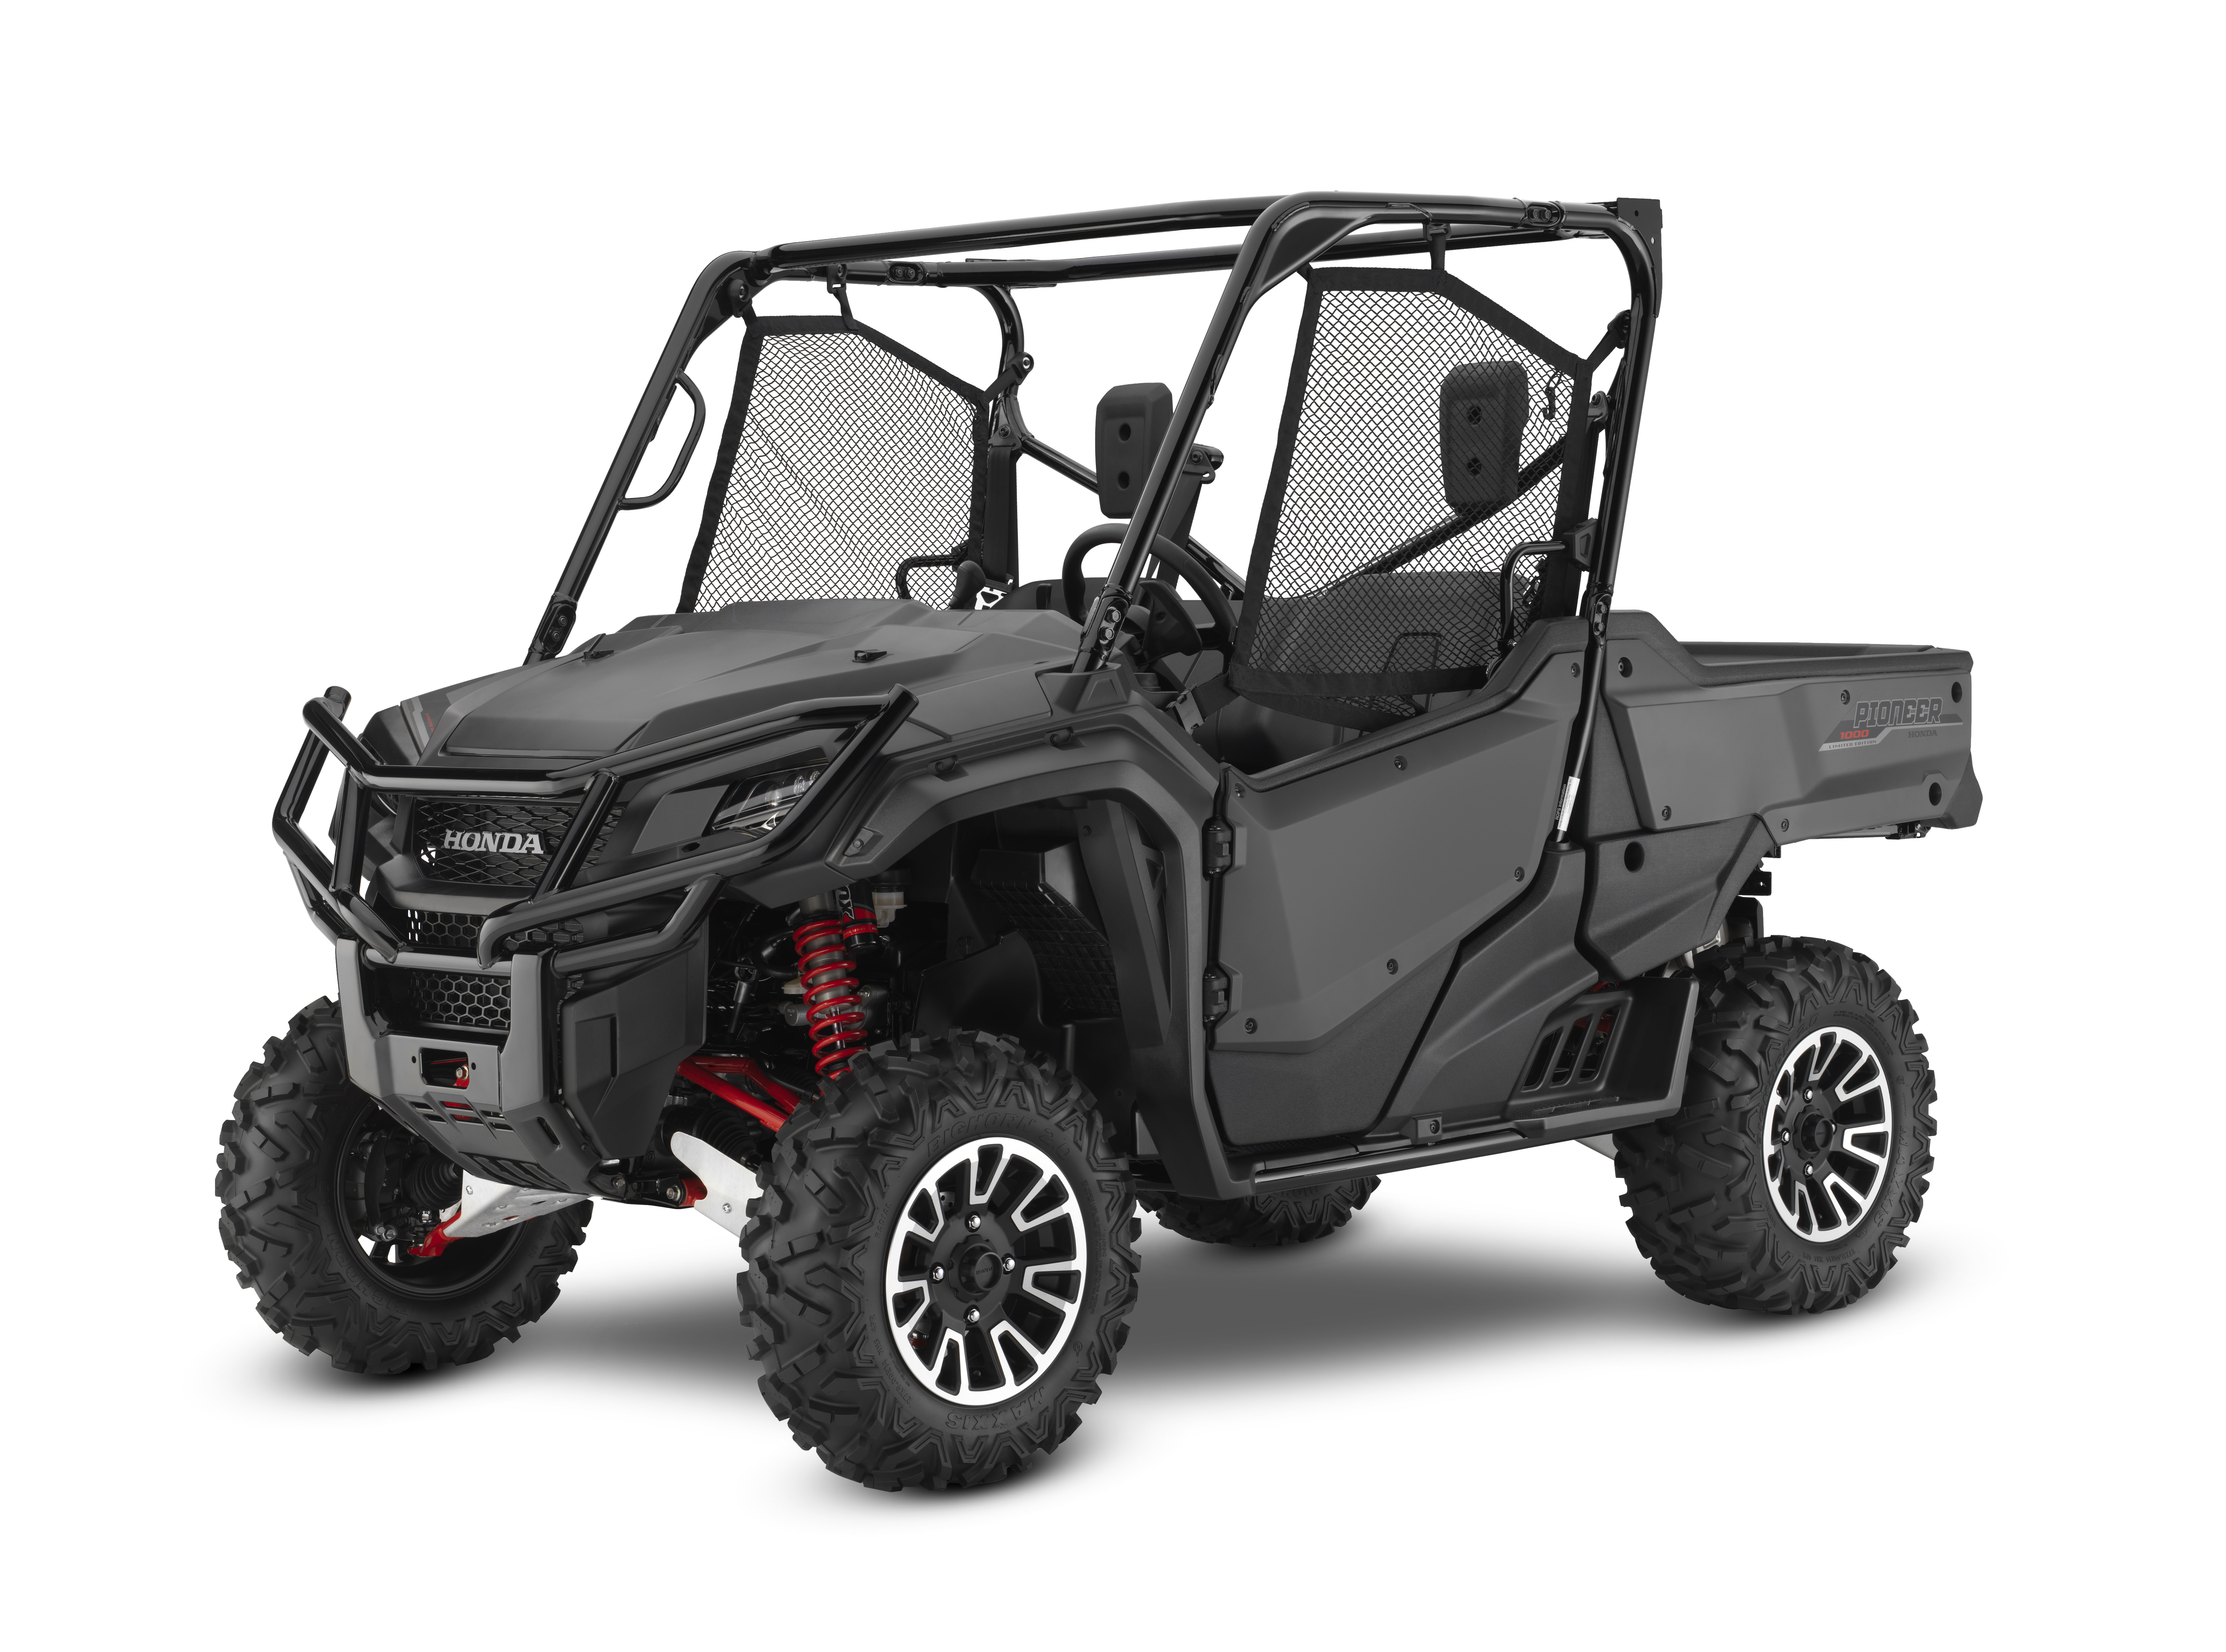 2018 Honda Pioneer 1000 LE / Limited Edition Review of Specs